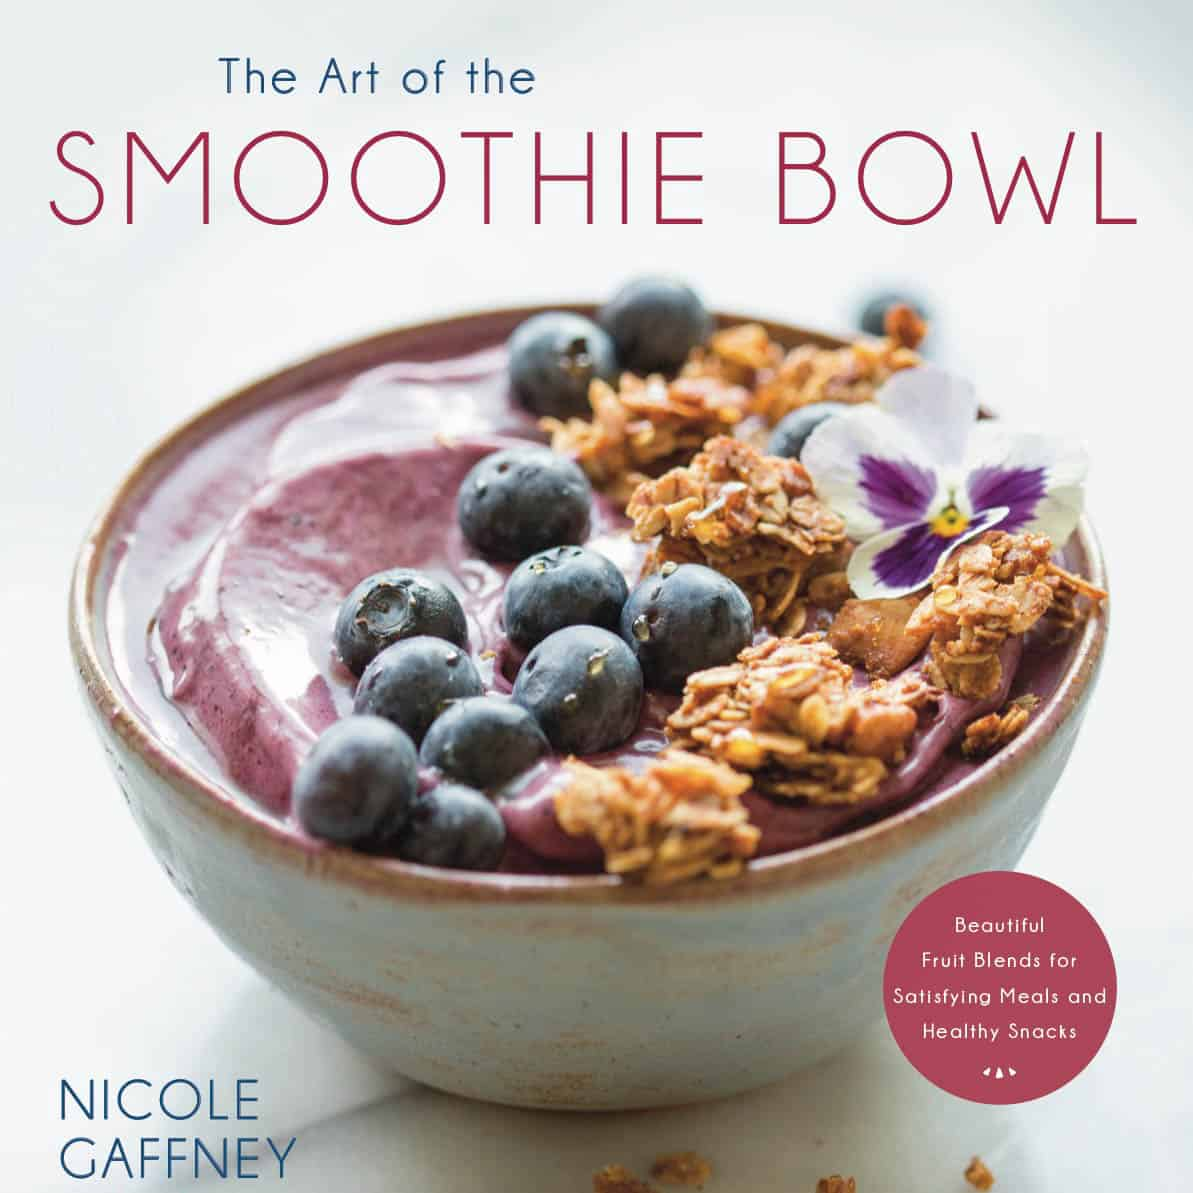 The Art of the Smoothie Bowl by Nicole Gaffney